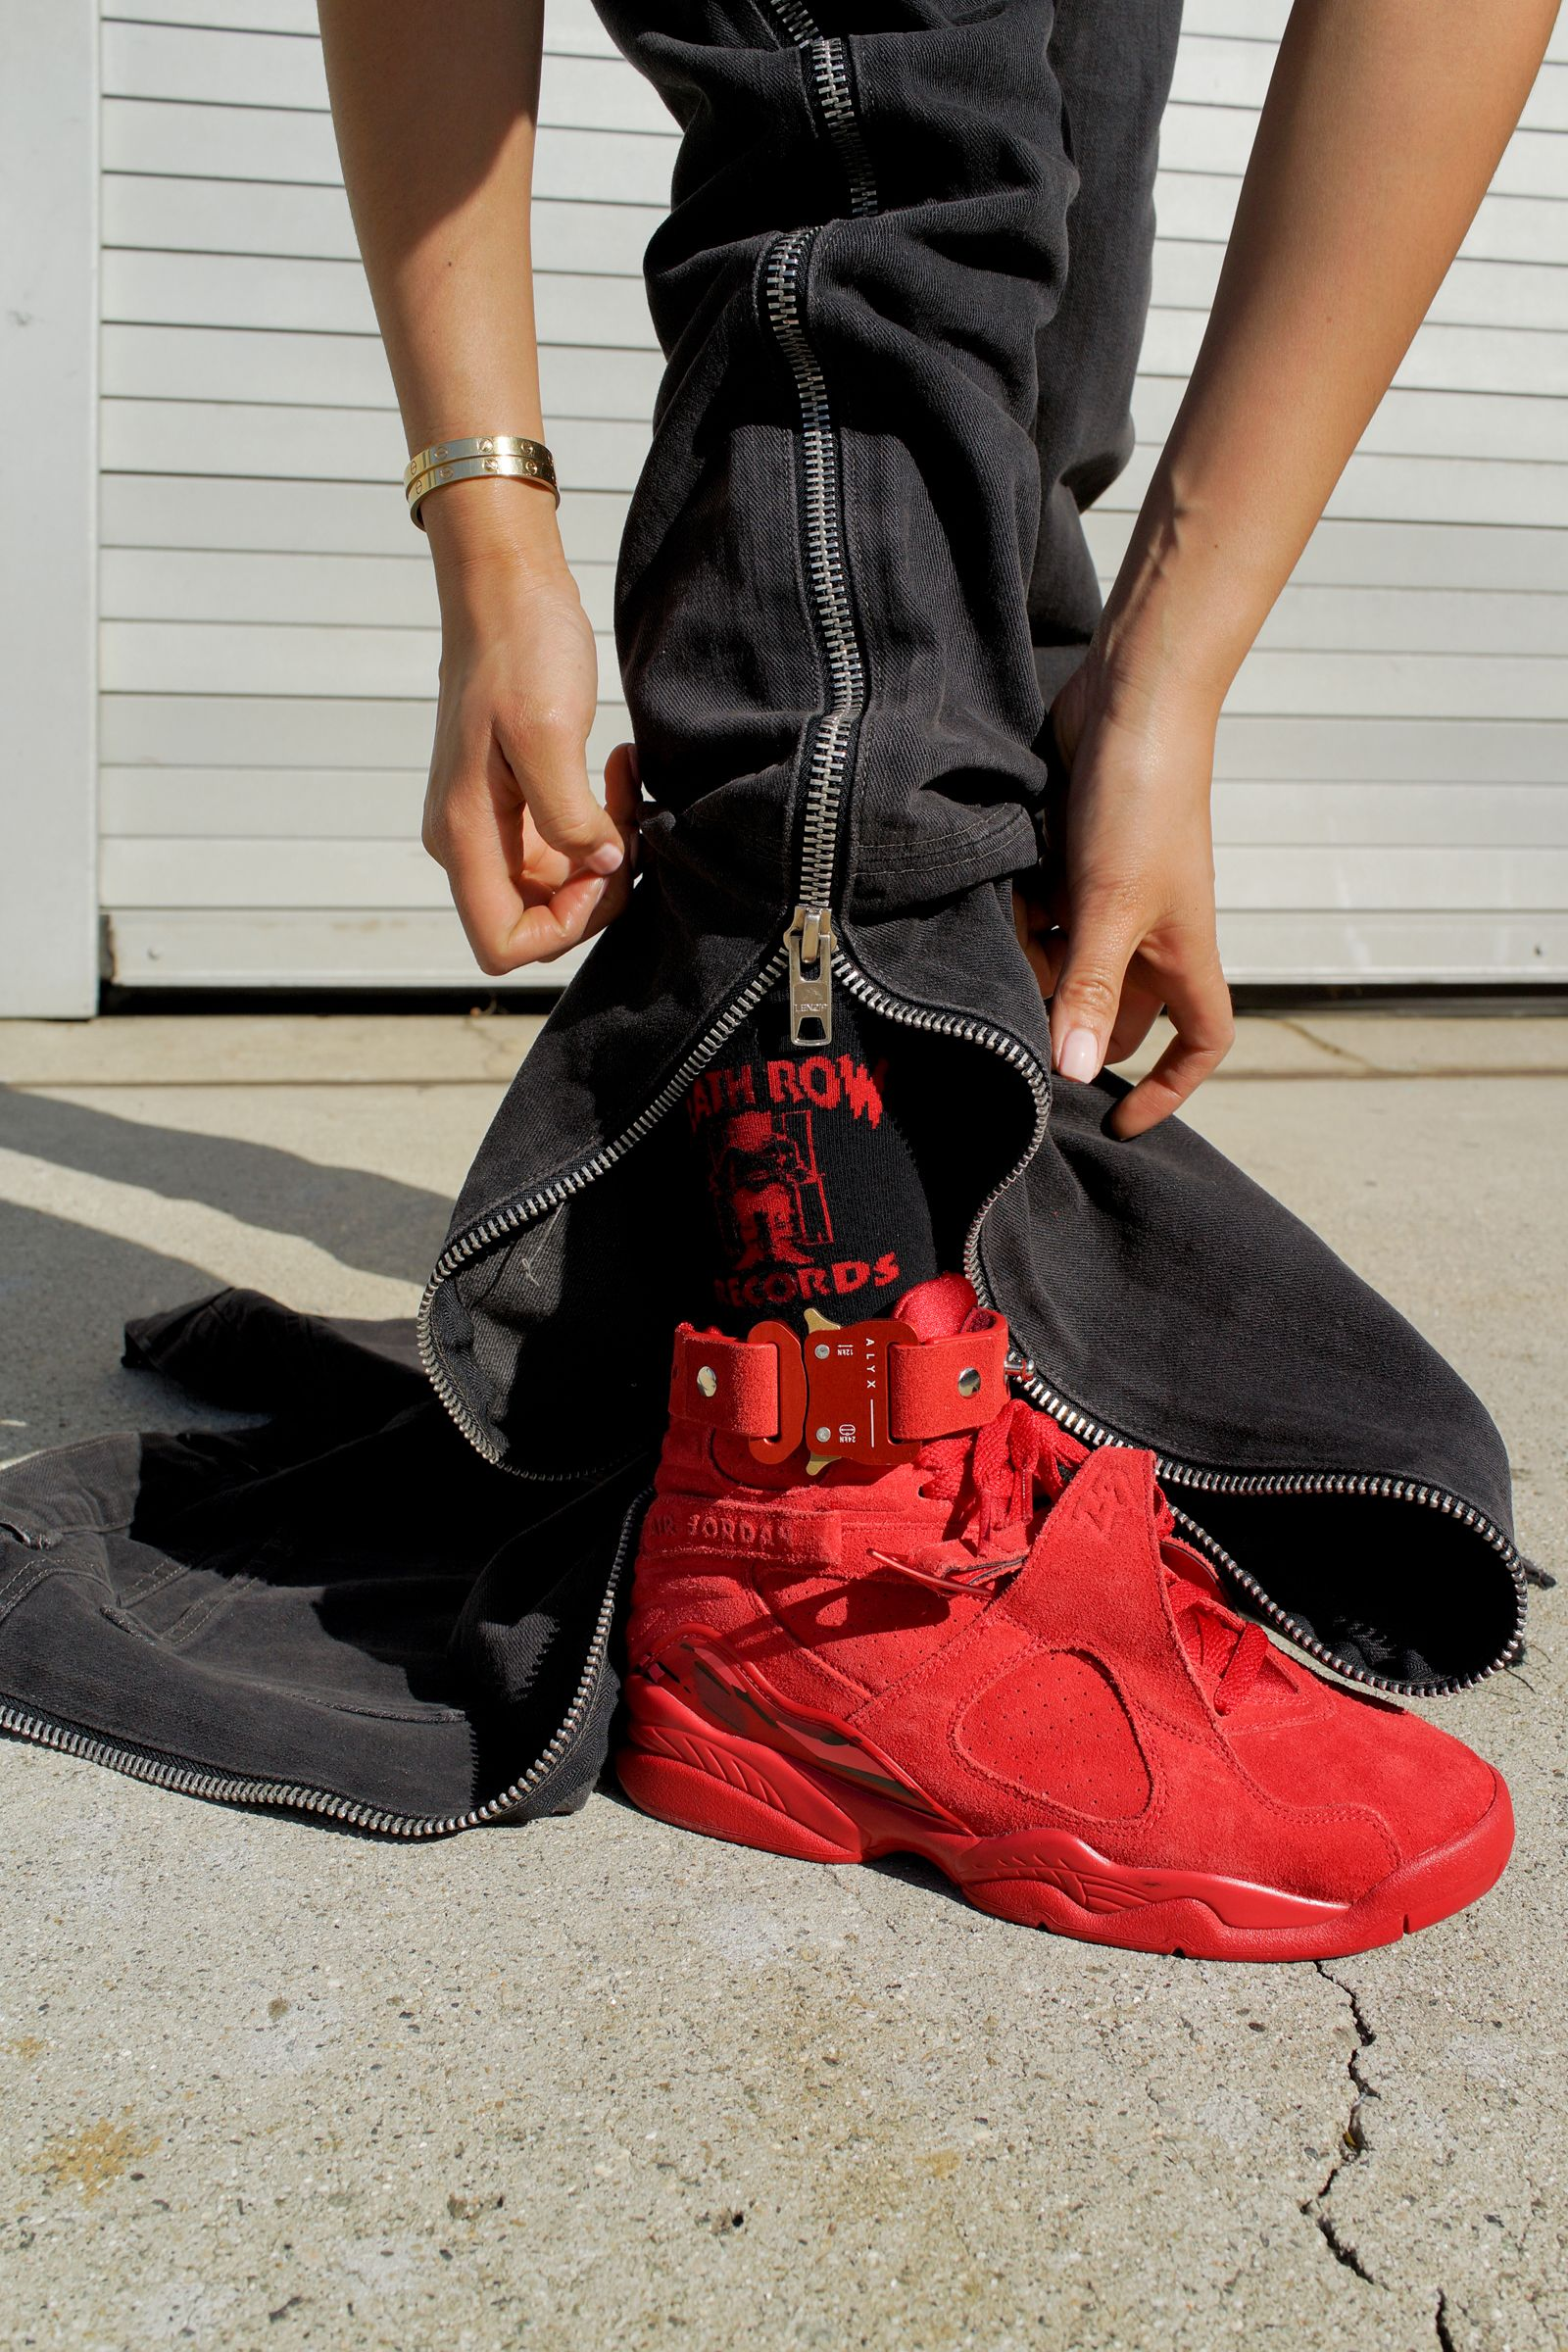 Aleali May Wearing The Valentine S Day Jordan 8 Retro With Death Row